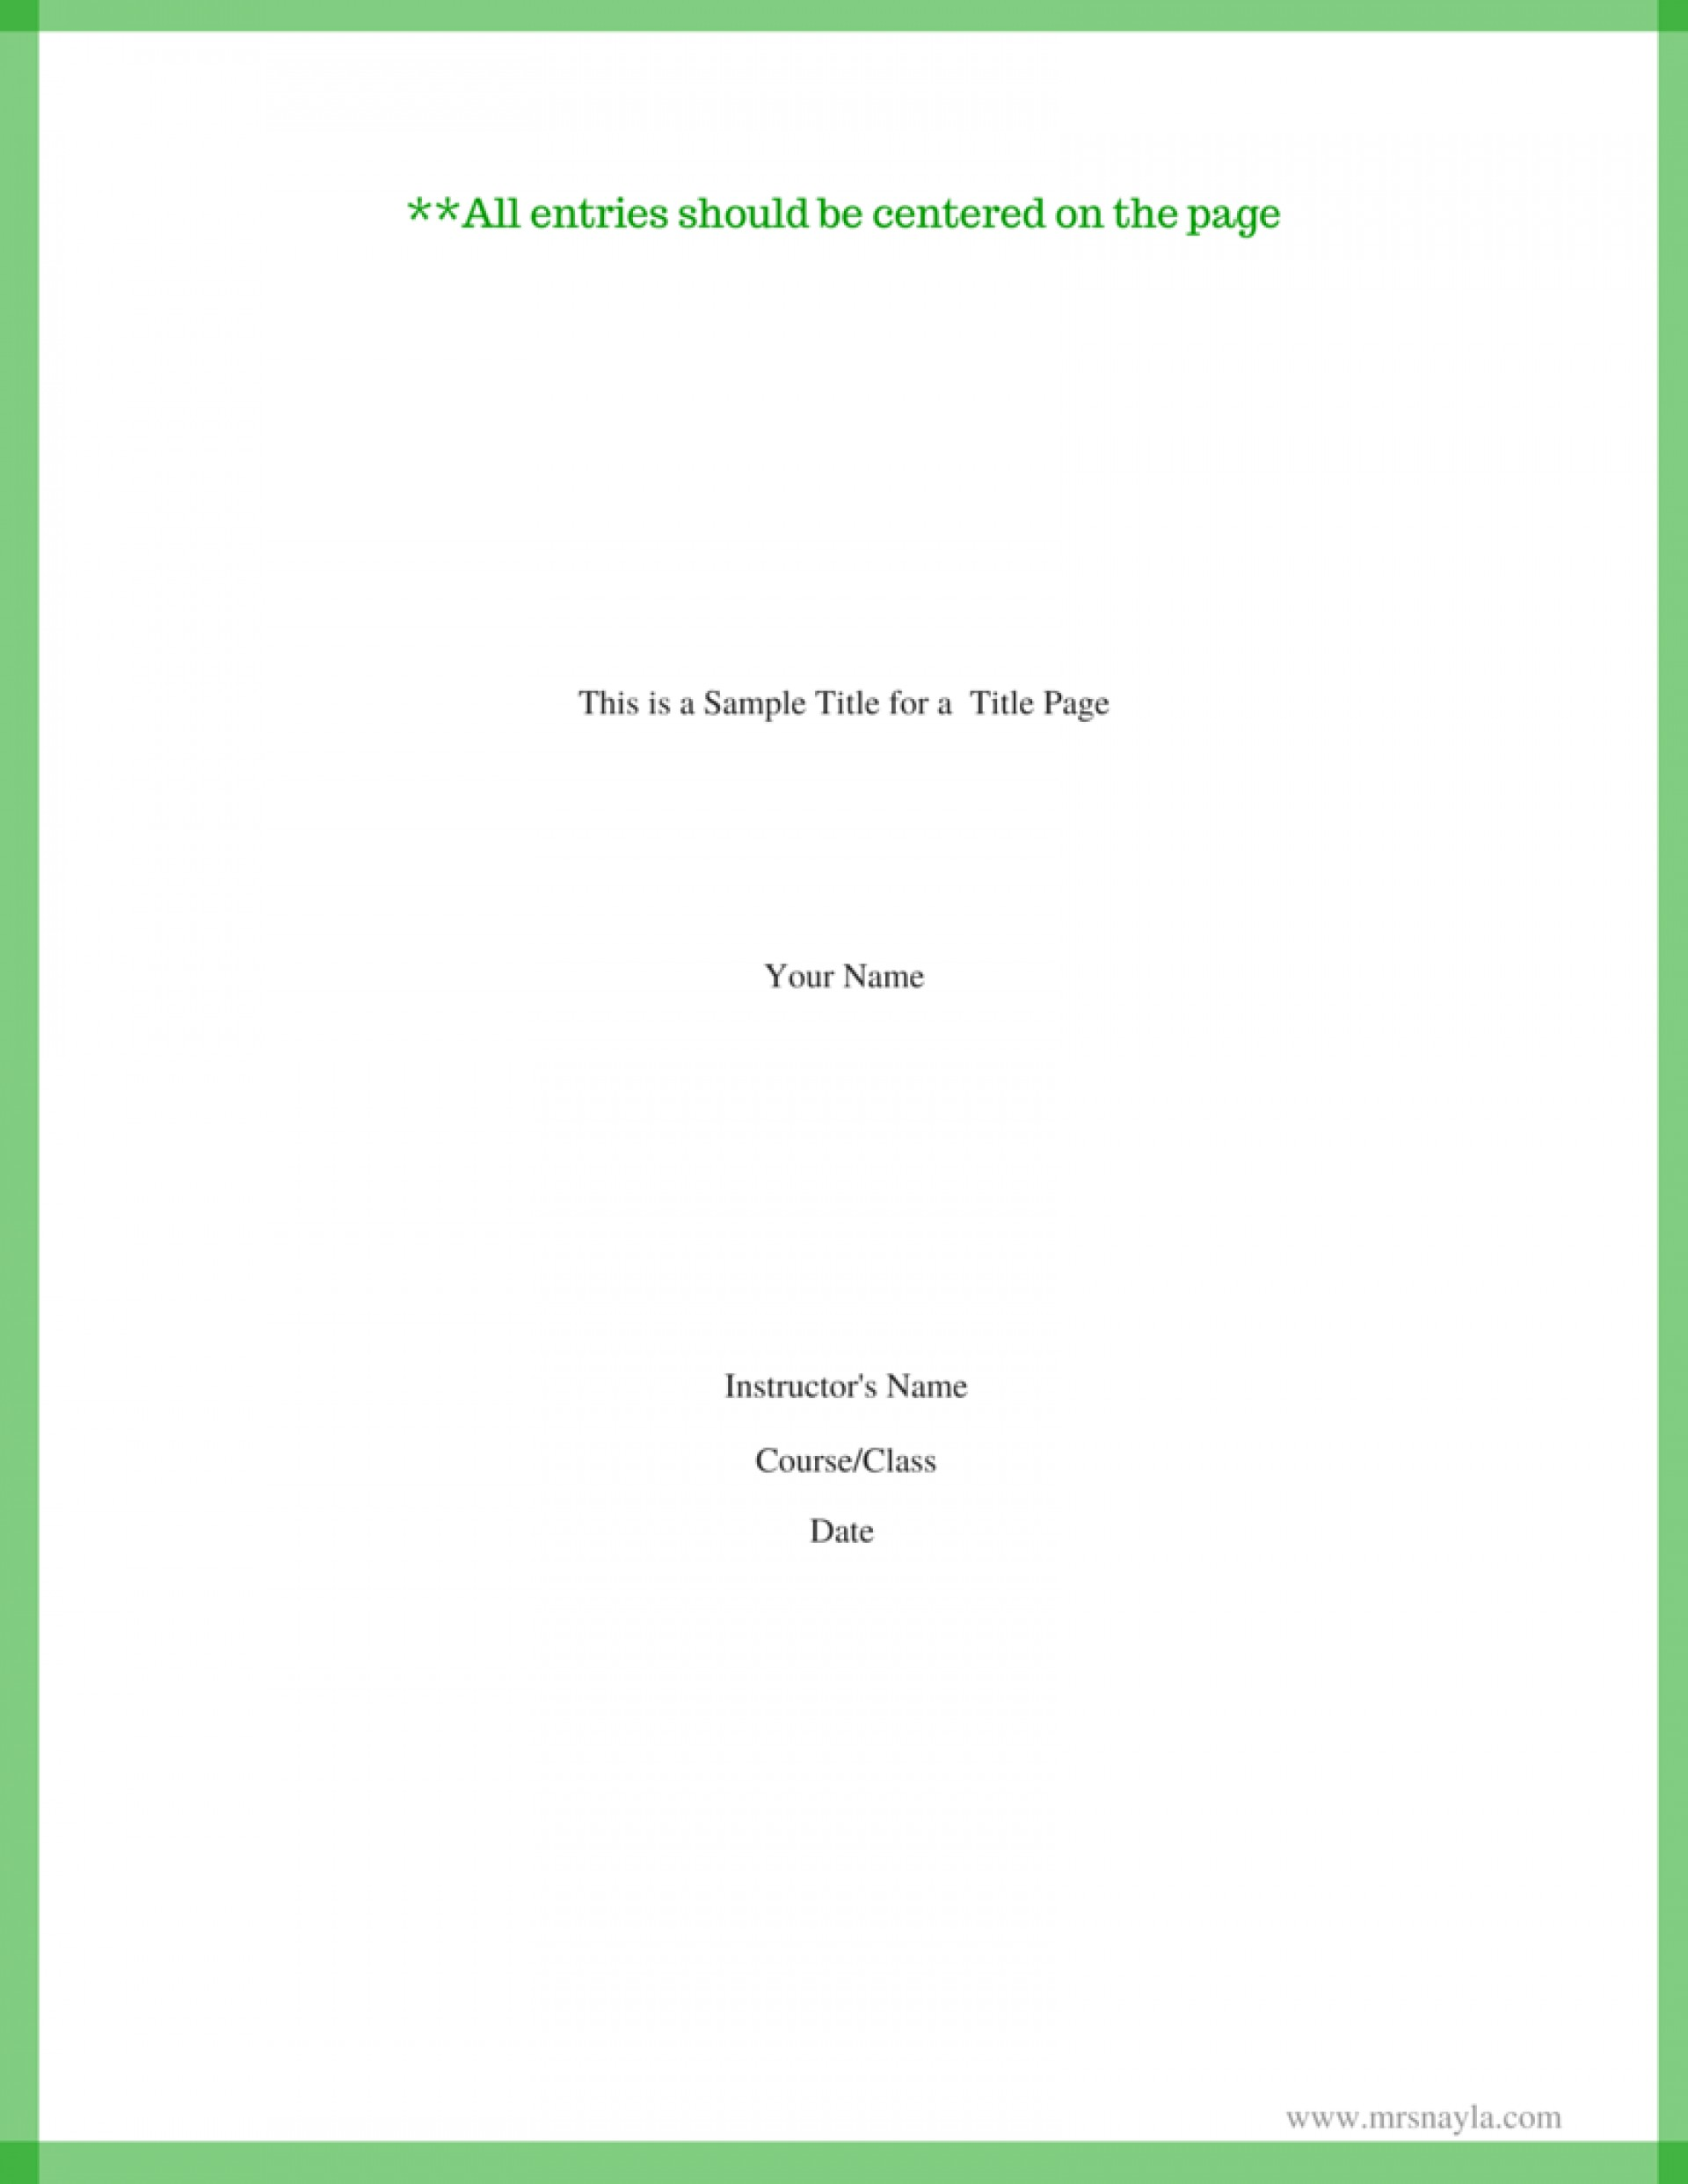 015 Do You Need Cover Page For Mla Research Paper This Is Sample Title Fascinating A 1920